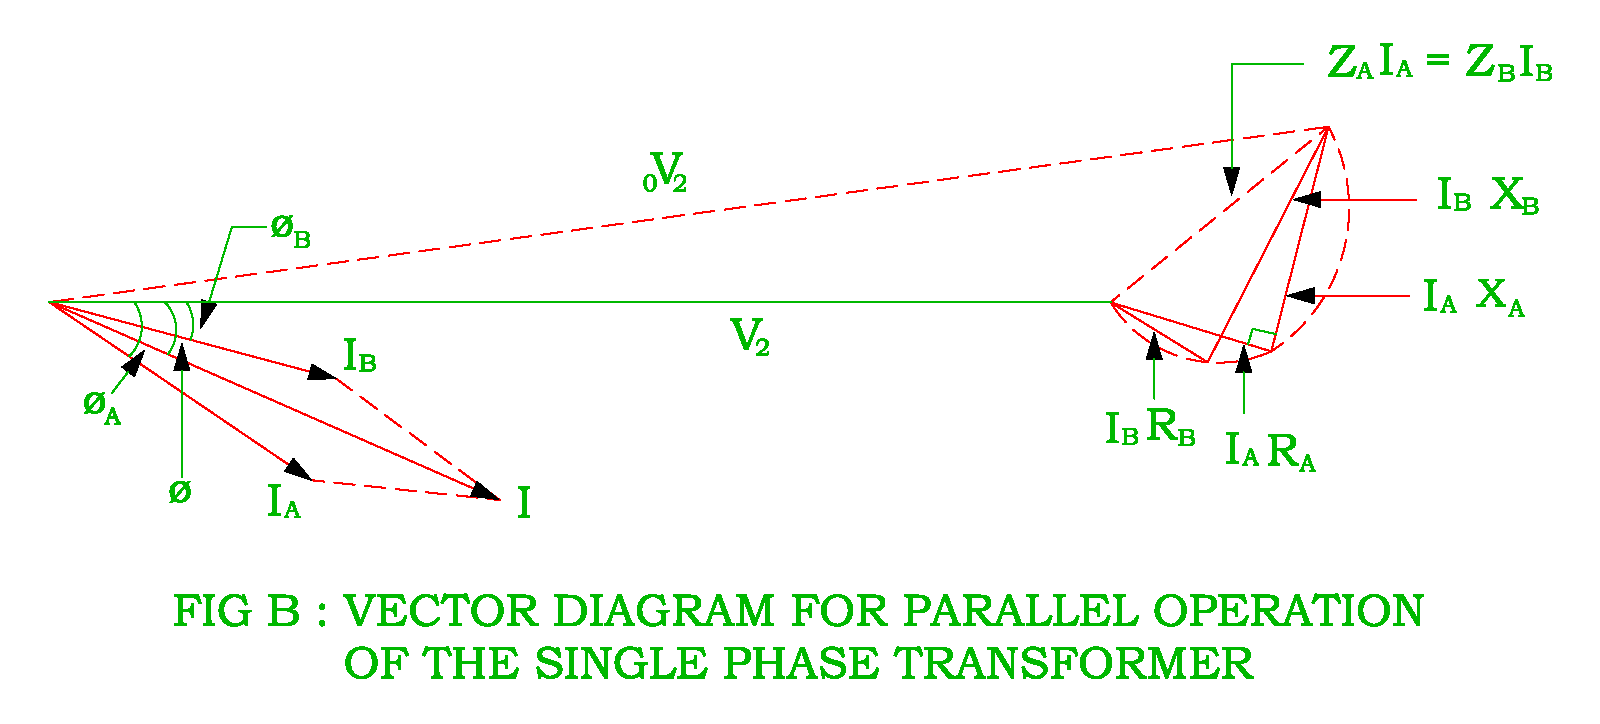 Parallel operation of the single phase transformer electrical vector diagram for parallel operation of single phase ccuart Gallery